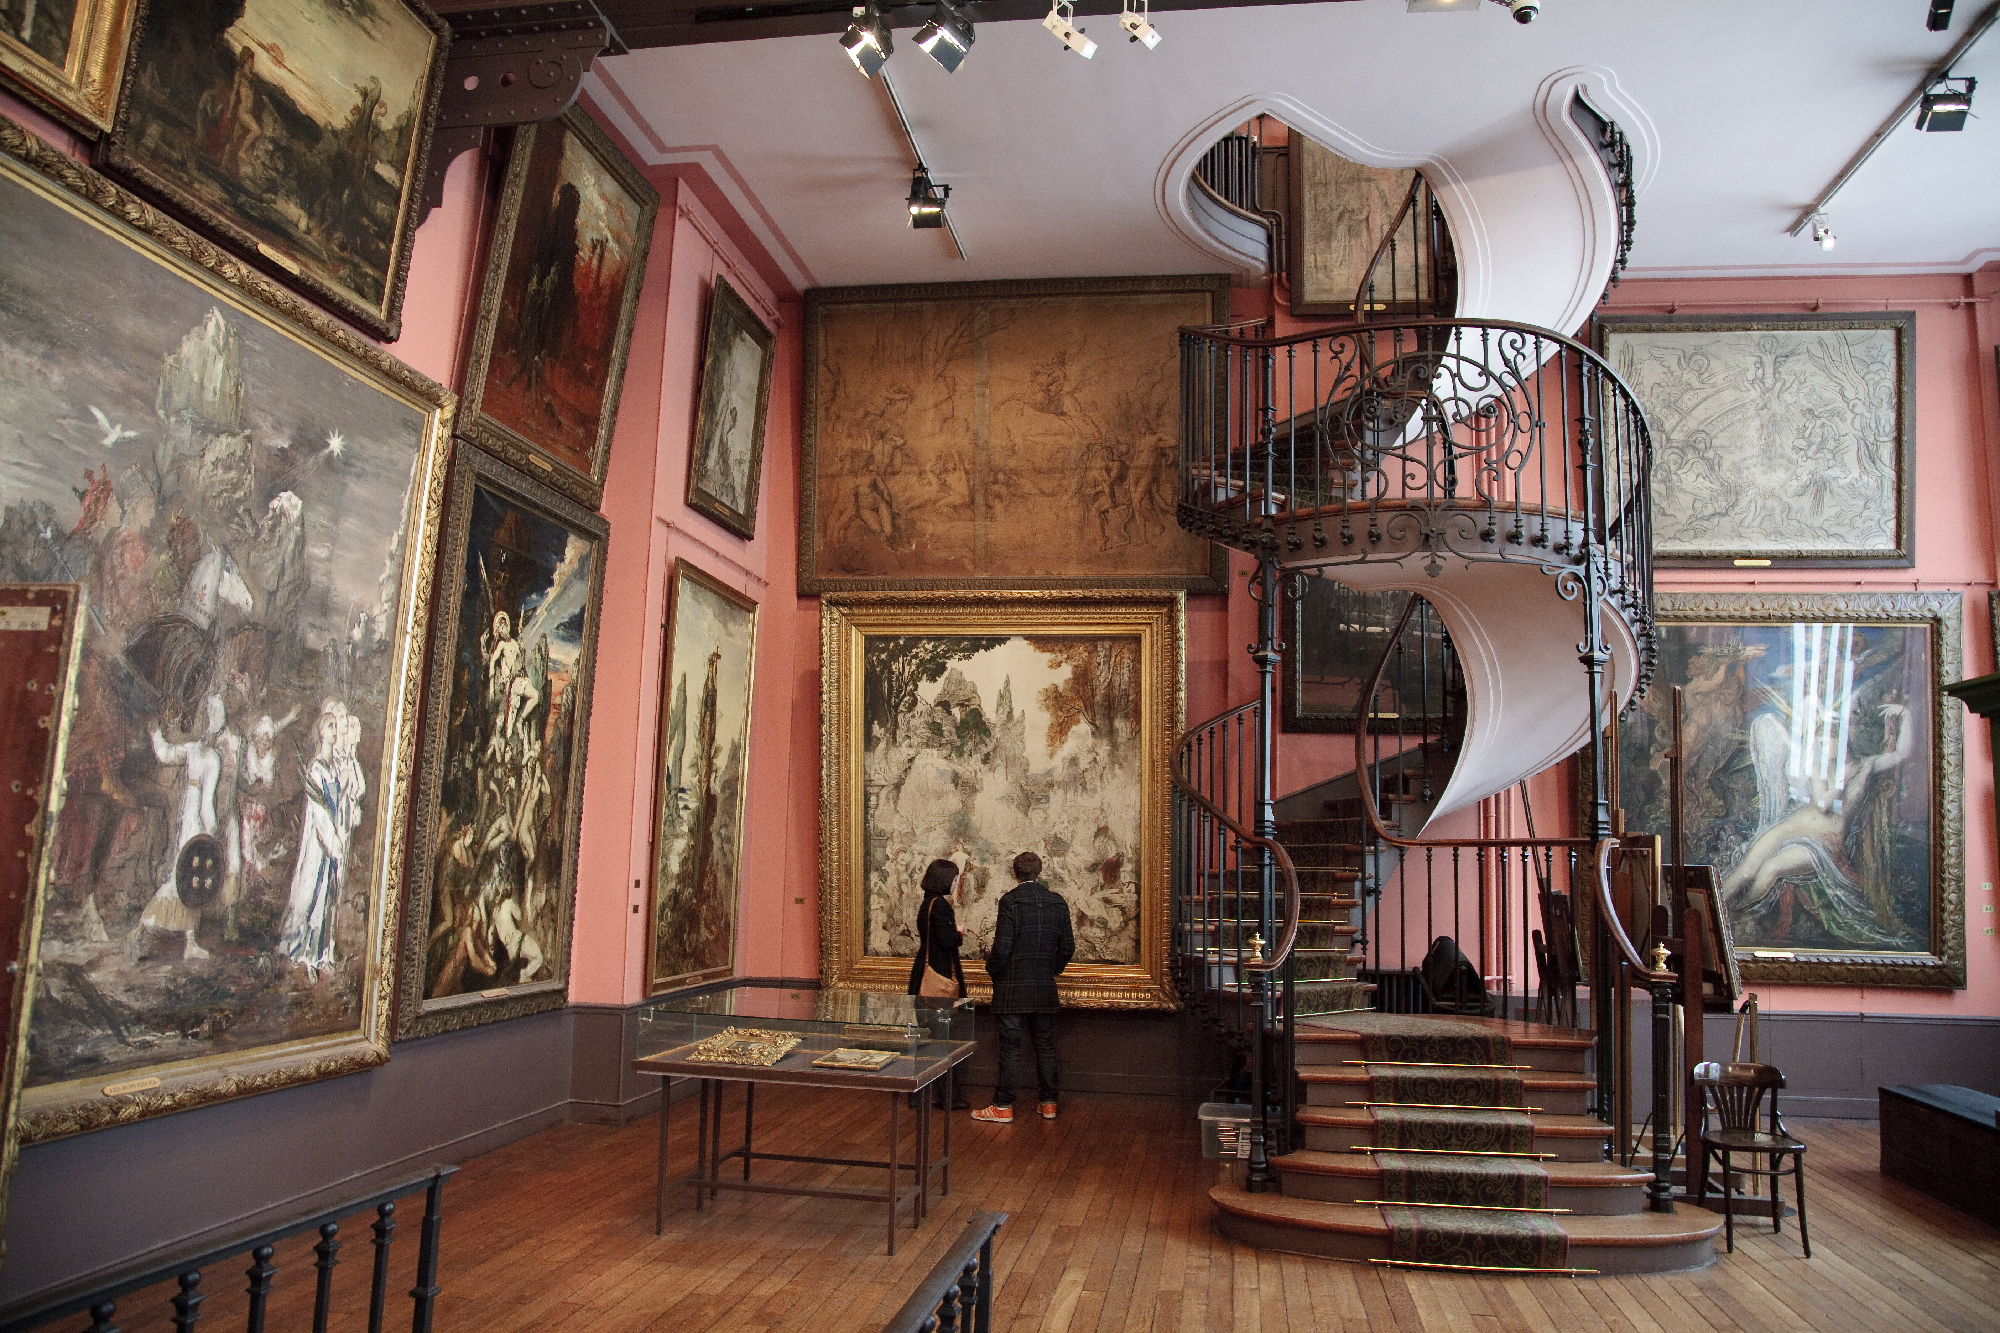 Live the dream at the Musée Gustave Moreau